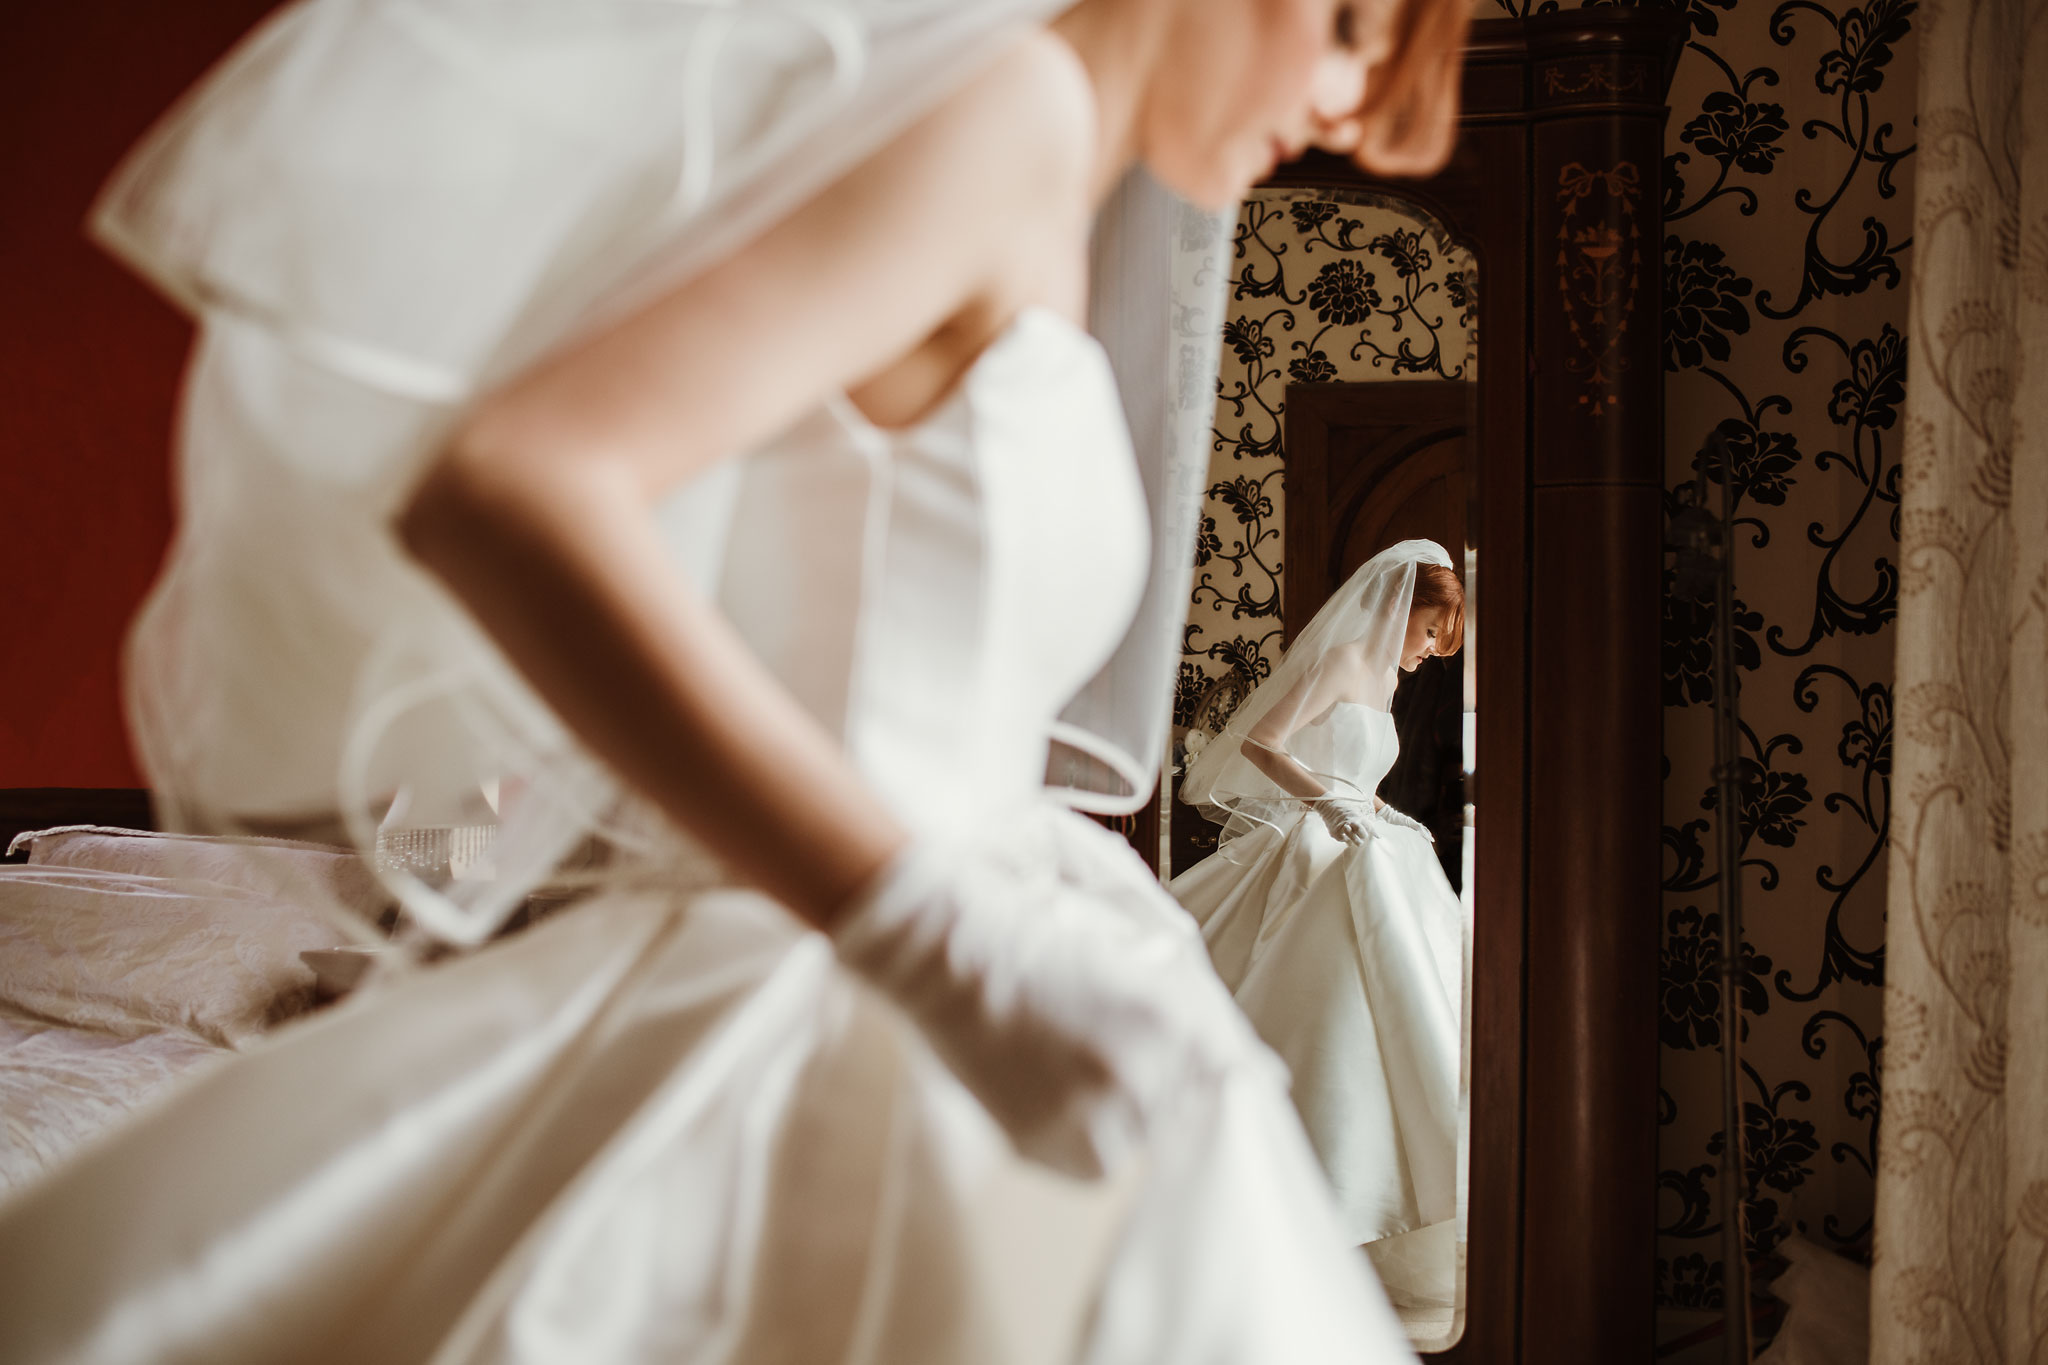 Bride reflected in mirror as she leaves for the ceremony - photo by Rich Howman - England